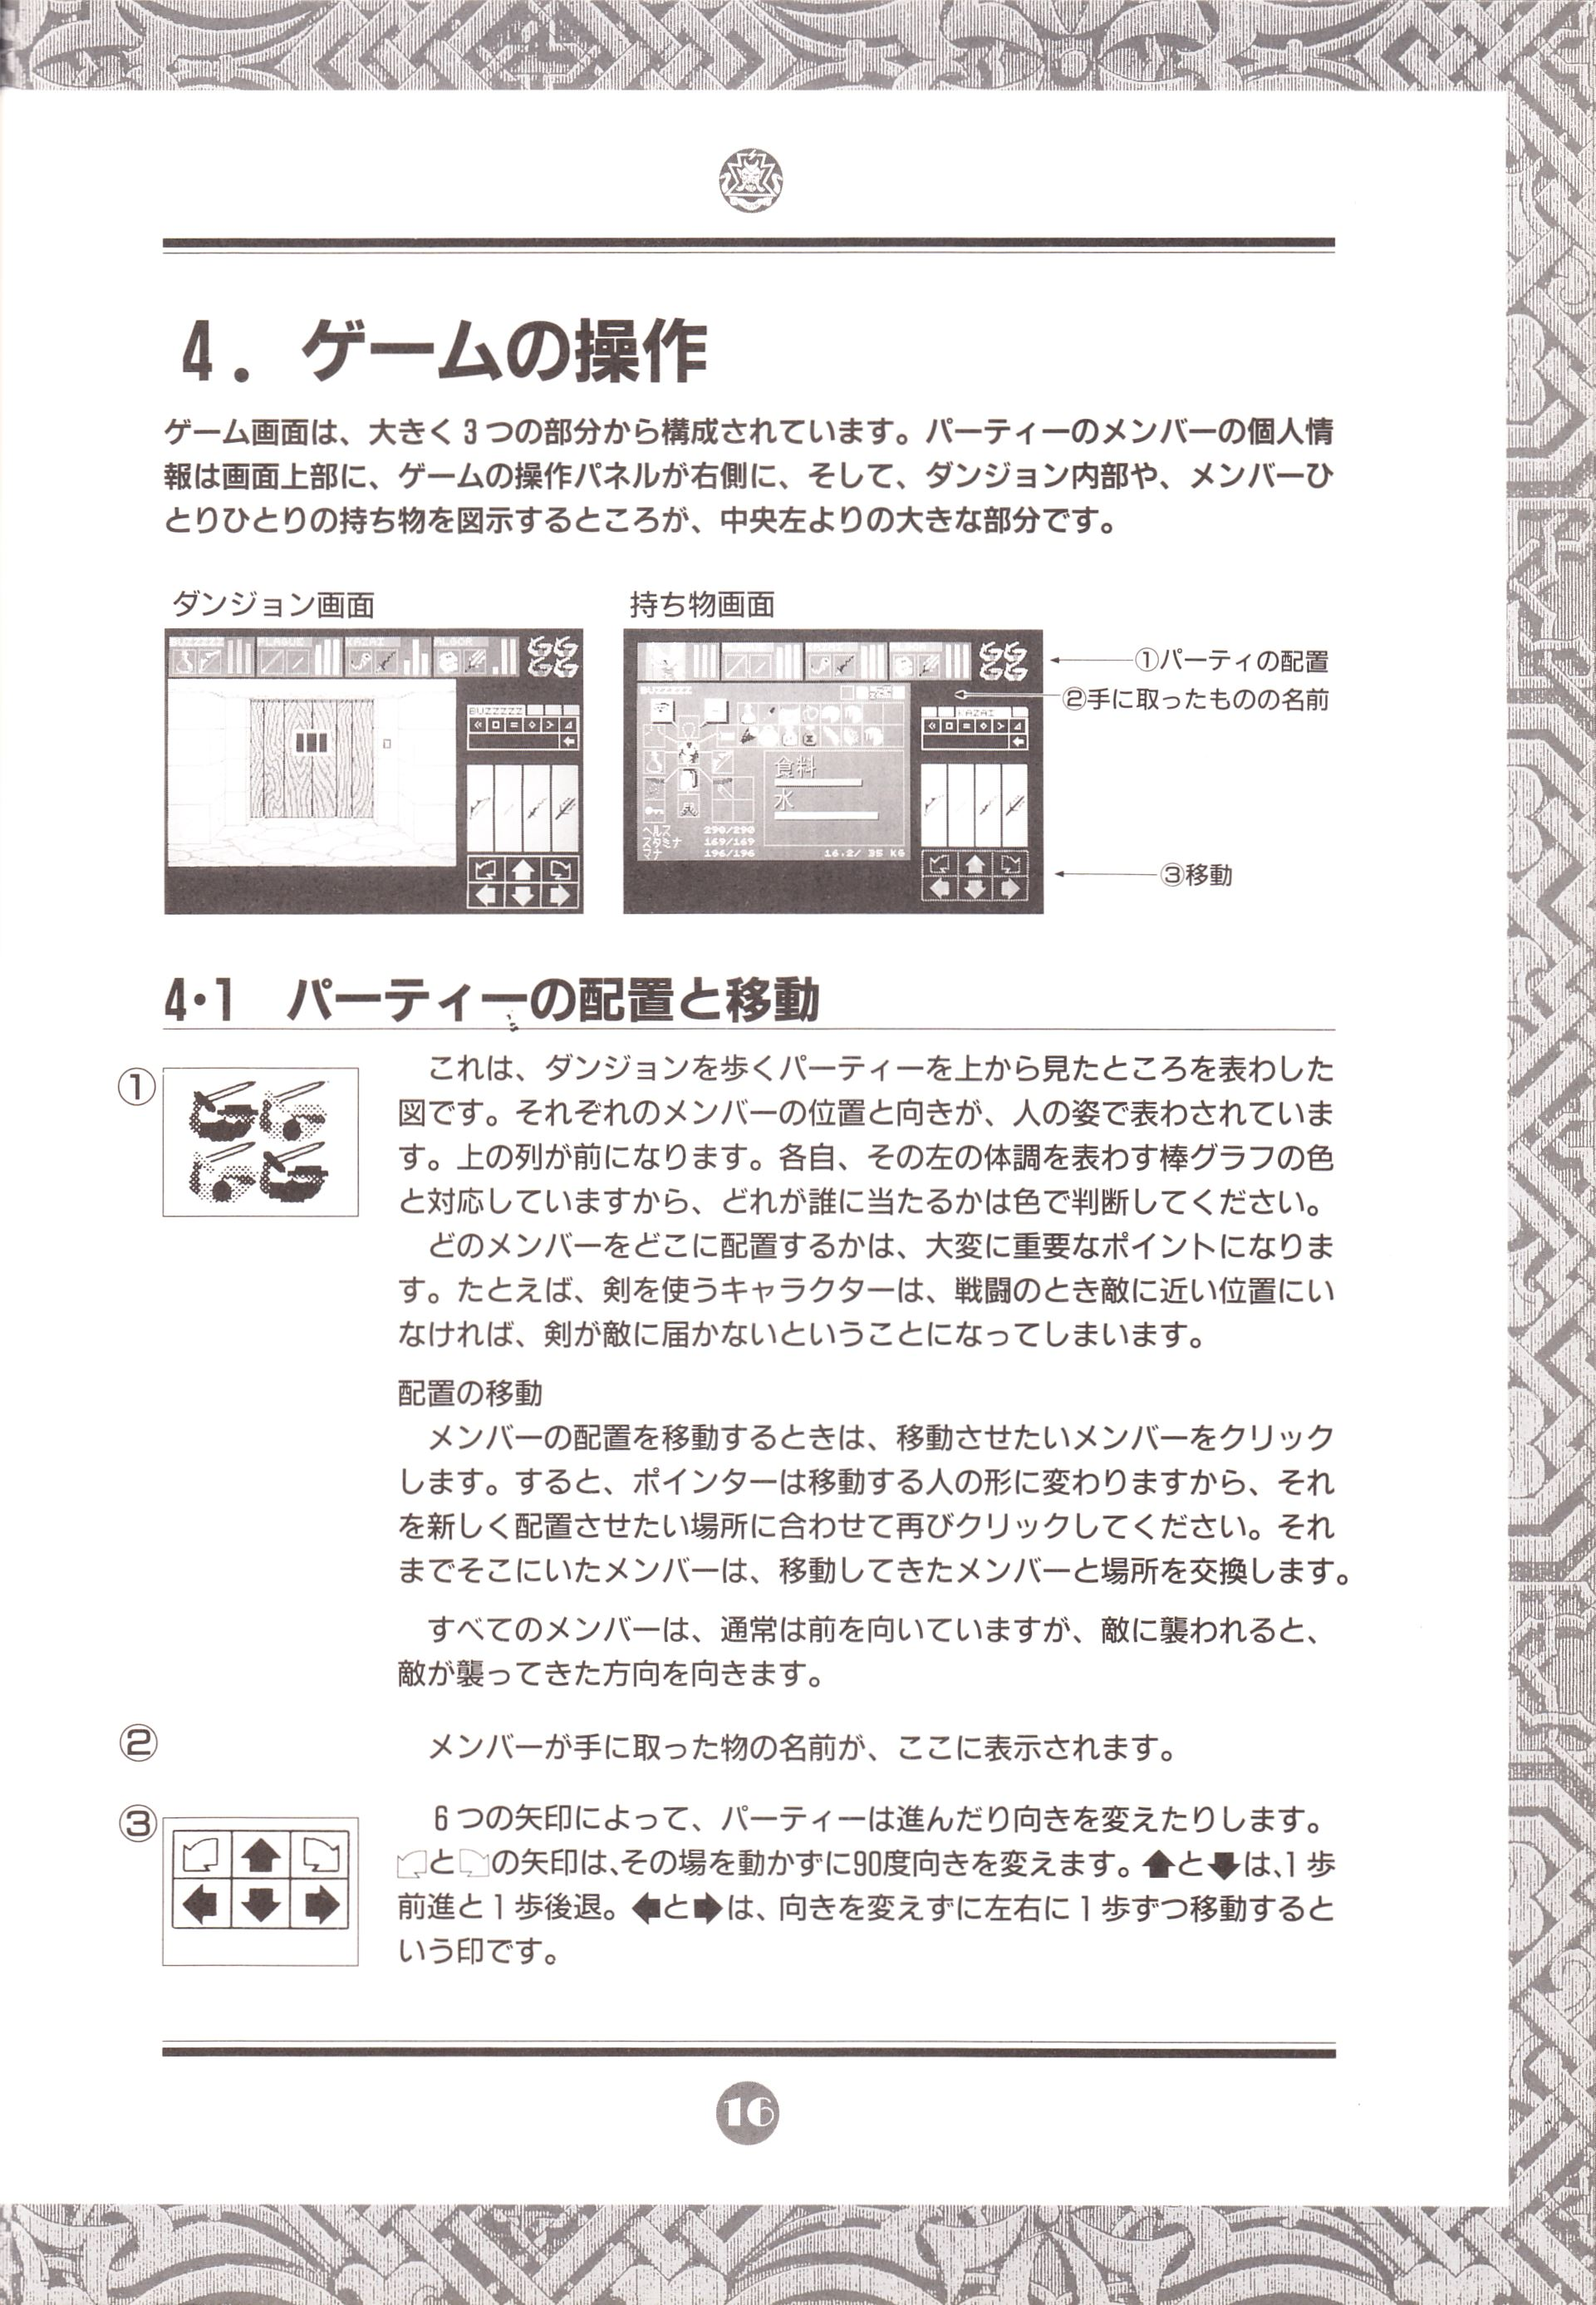 Game - Chaos Strikes Back - JP - PC-9801 - 3-5-inch - An Operation Manual - Page 019 - Scan